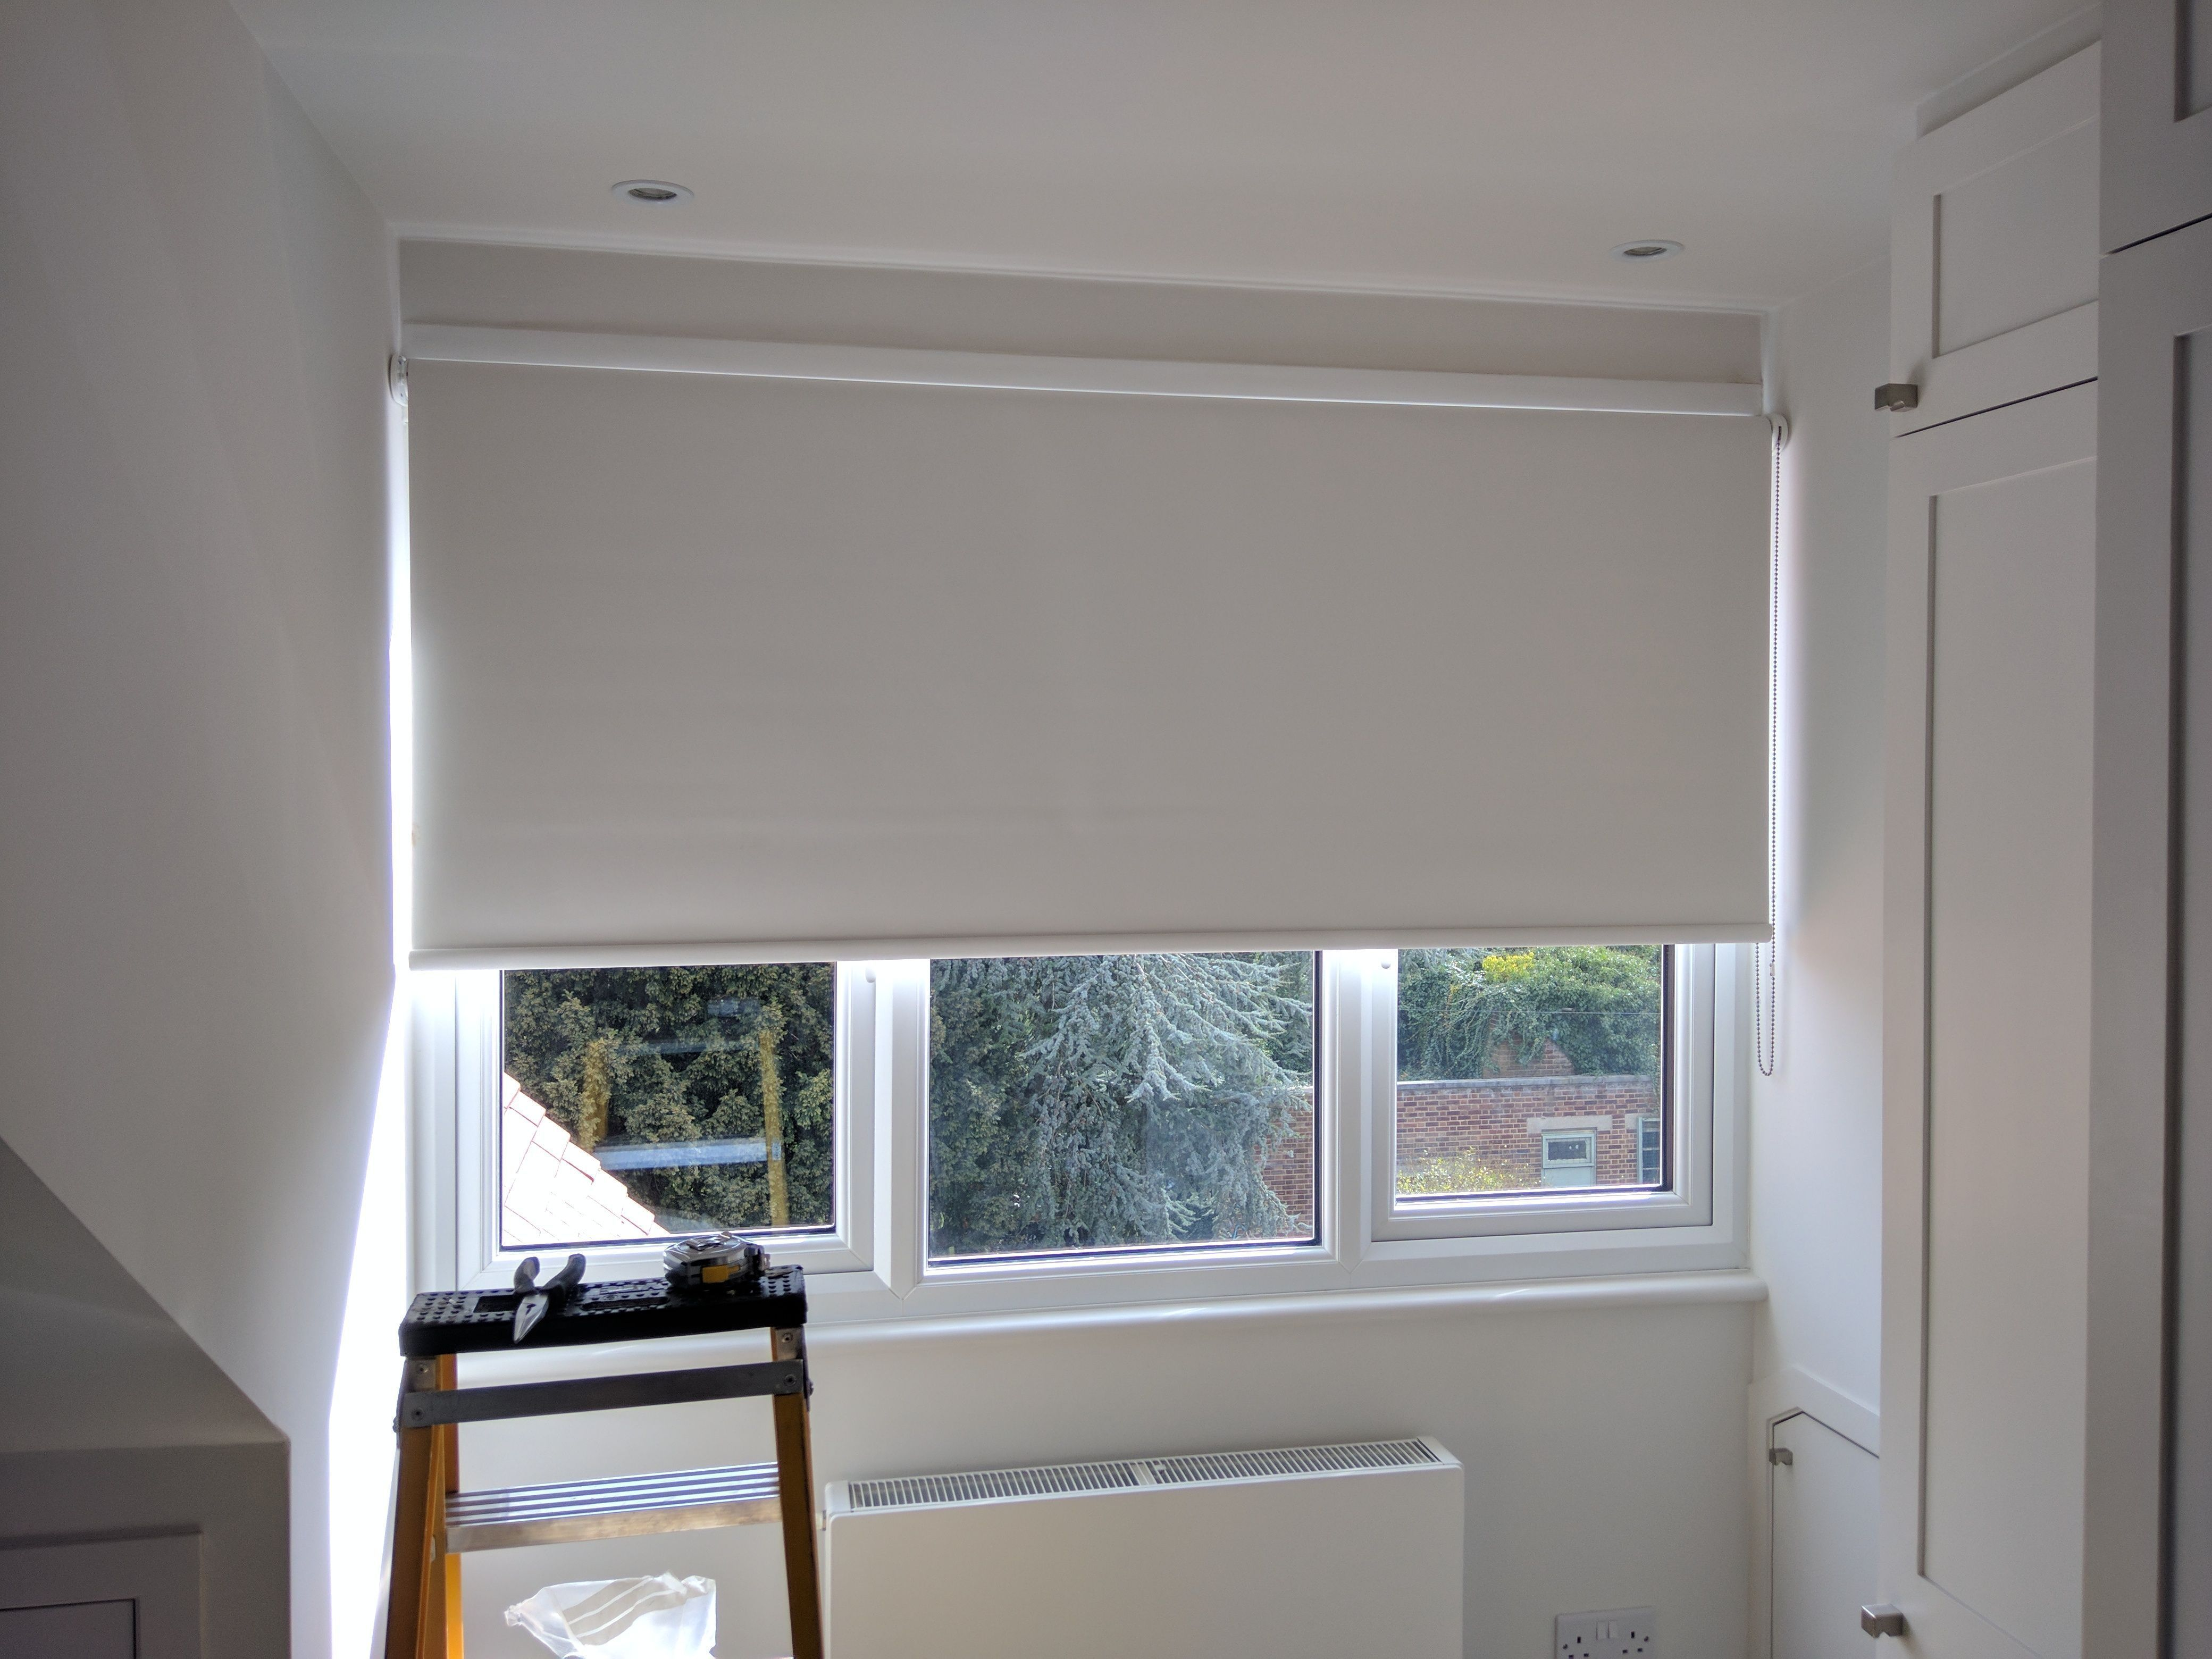 Blackout Roller Blind In Polar White Colour Fitted To Bedroom Window In Fulham London Fitted Reverse Roll To Blinds Design Blinds For Windows Bedroom Blinds